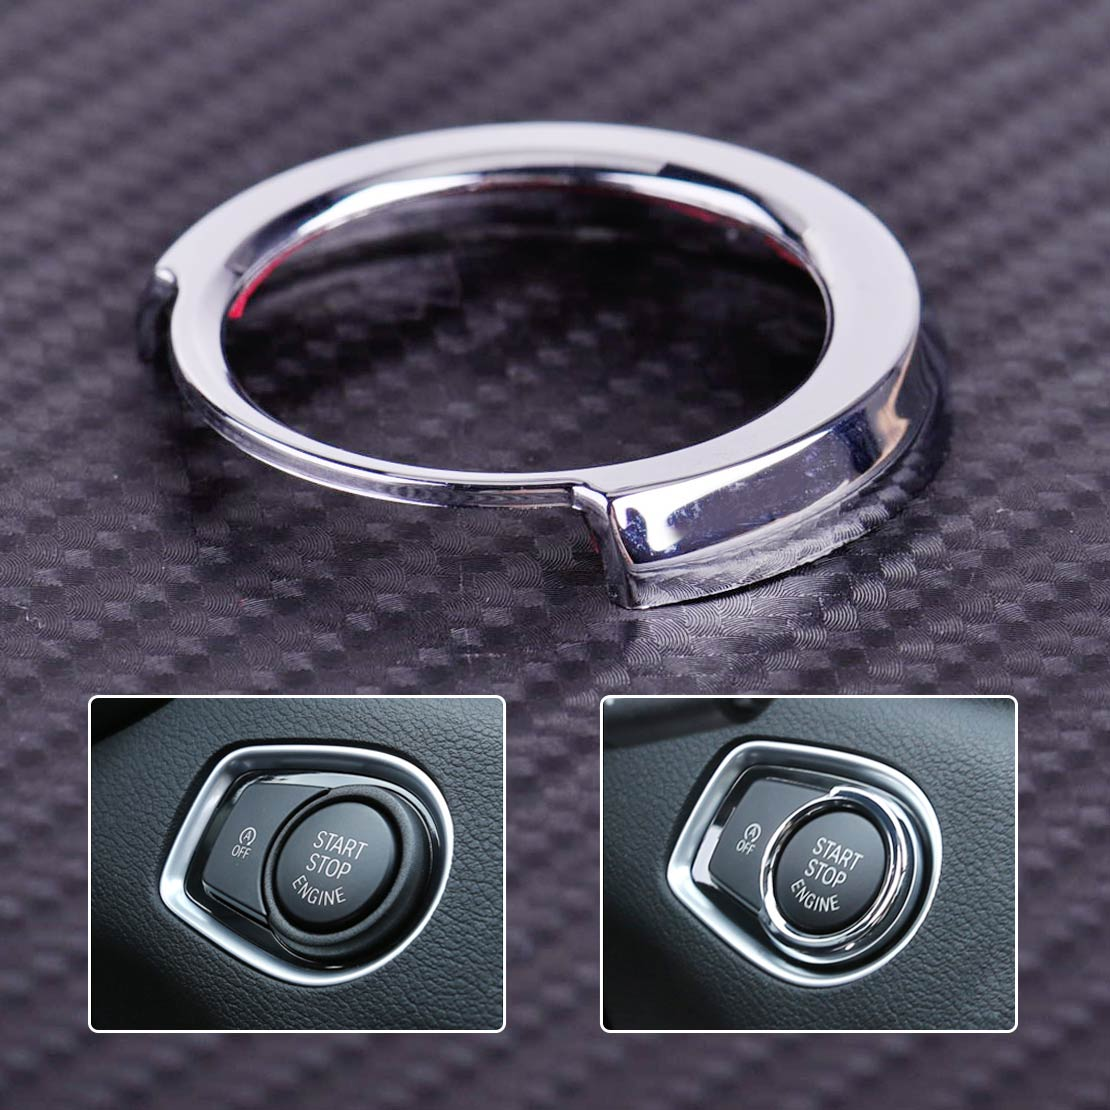 CITALL car-styling Chrome Engine Start Stop Button Switch Decorative Frame Cover Trim for <font><b>BMW</b></font> 1 3 Series F30 F20 316i 320i <font><b>116i</b></font> image